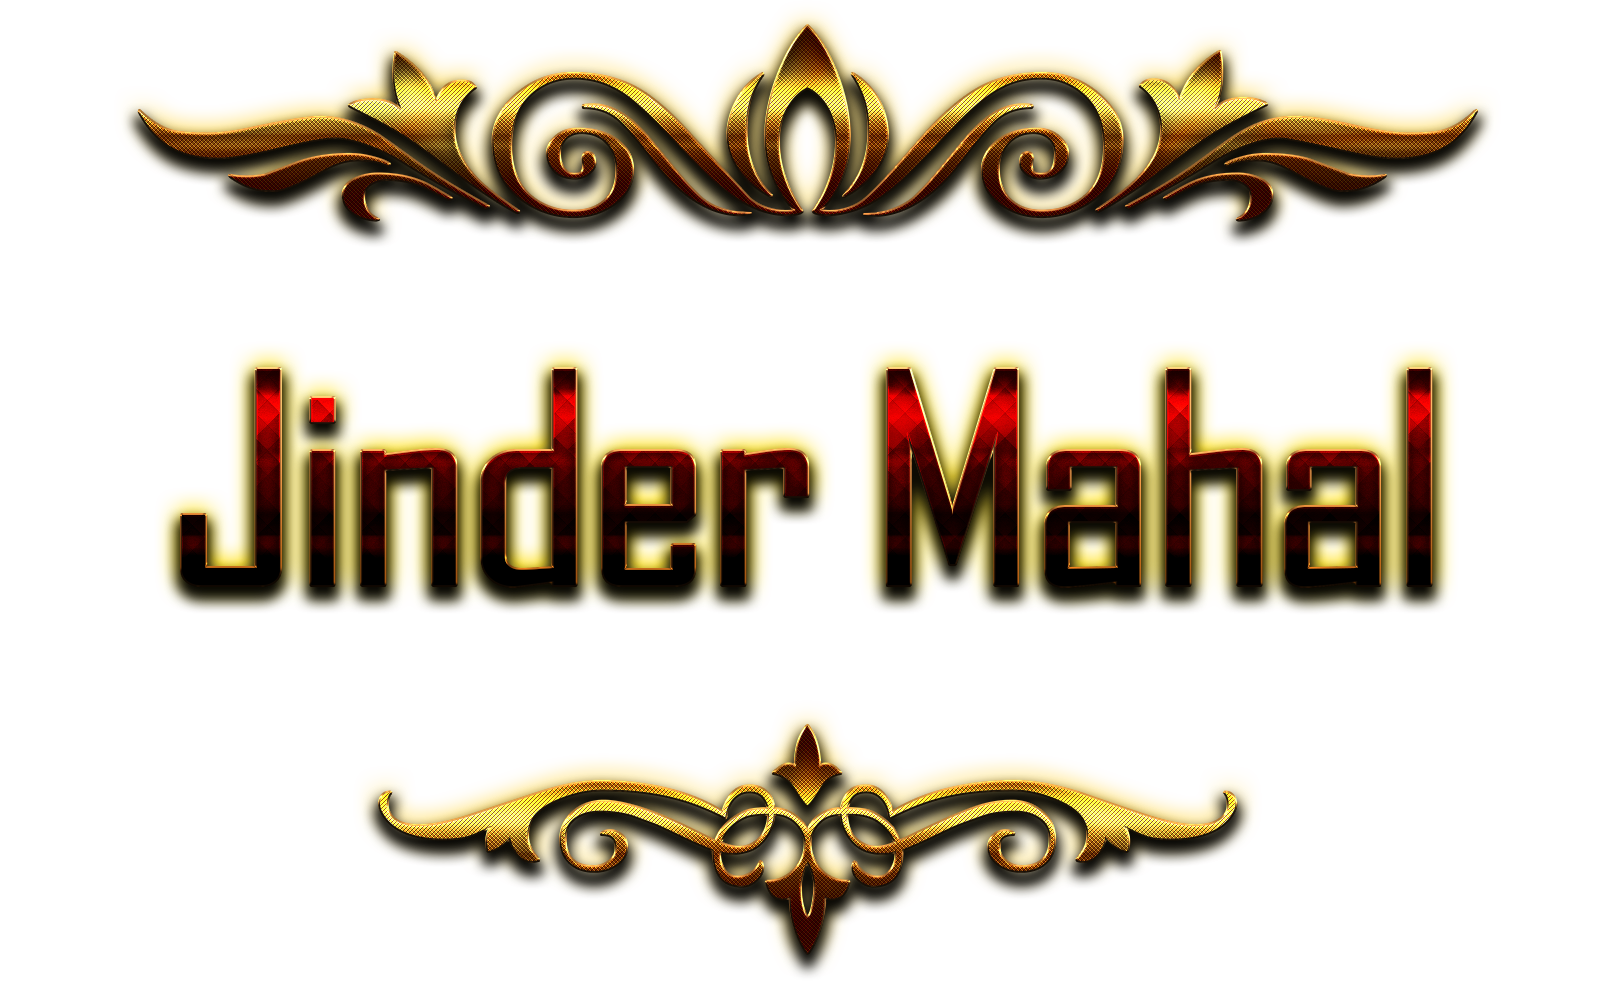 Jinder Mahal PNG Transparent Images Free Download.